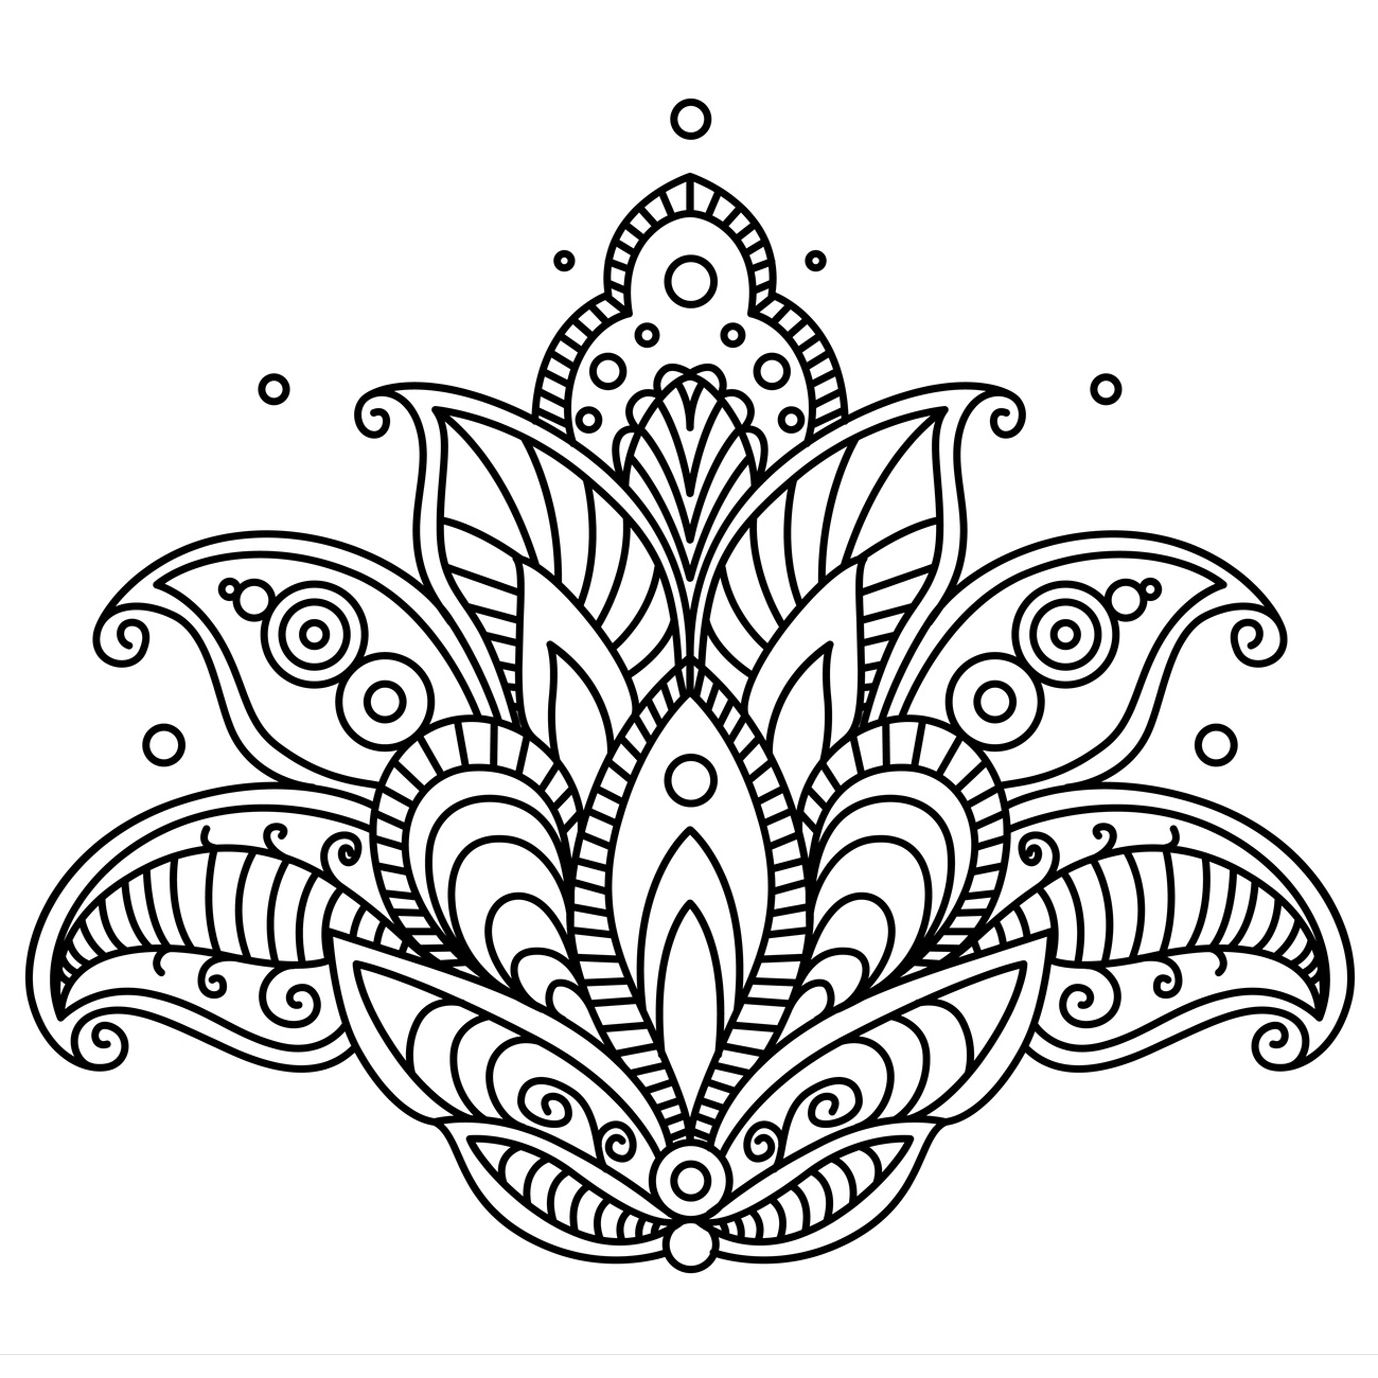 mandala buscar con google mandala pinterest coloriage mandala coloriage et en ligne. Black Bedroom Furniture Sets. Home Design Ideas